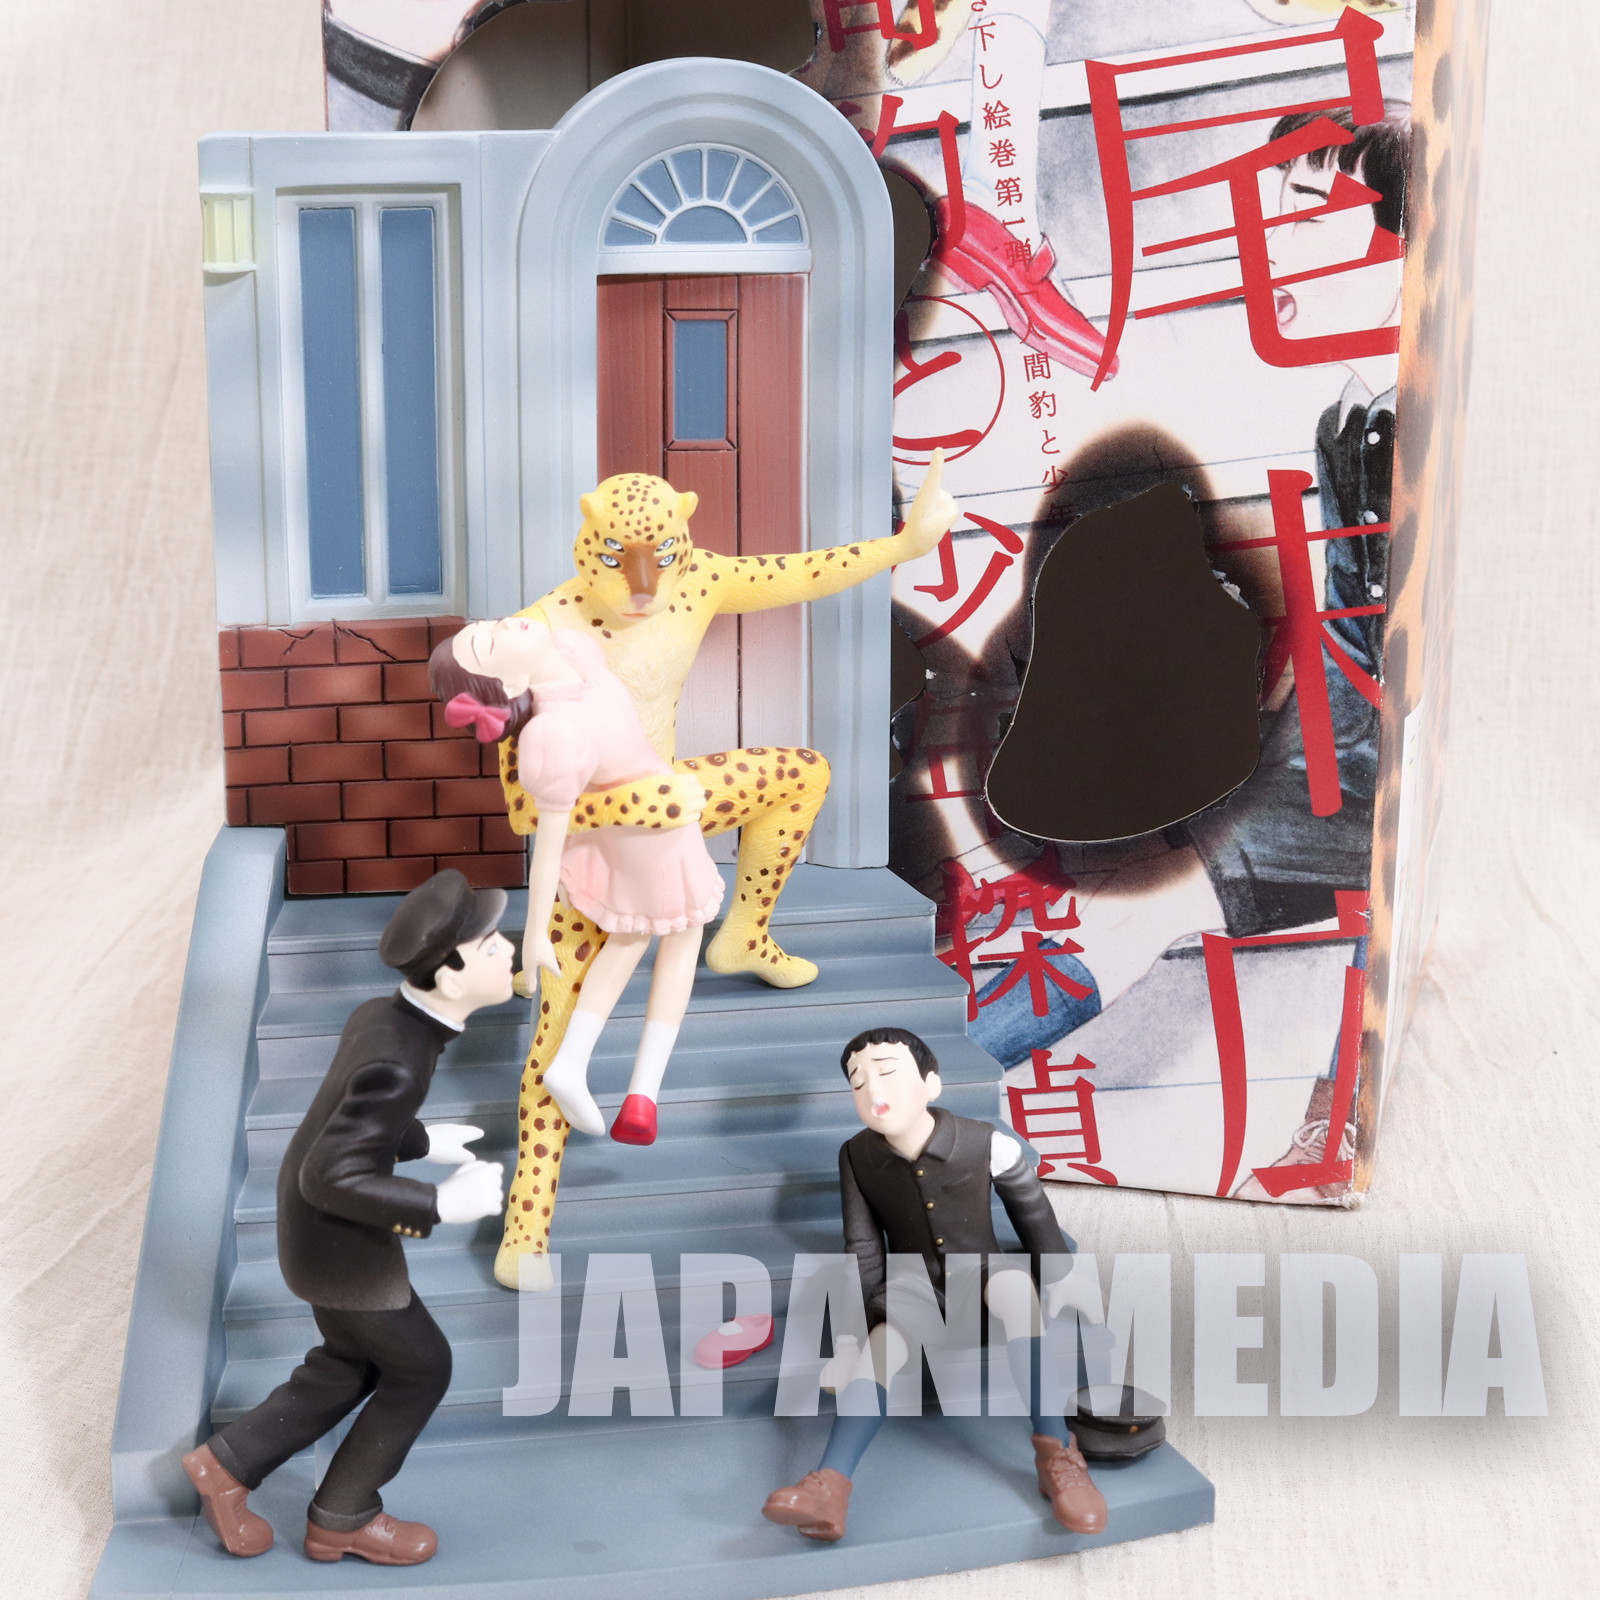 RARE Suehiro Maruo Diorama Figure The Leopard-man and the Young Detectives JAPAN